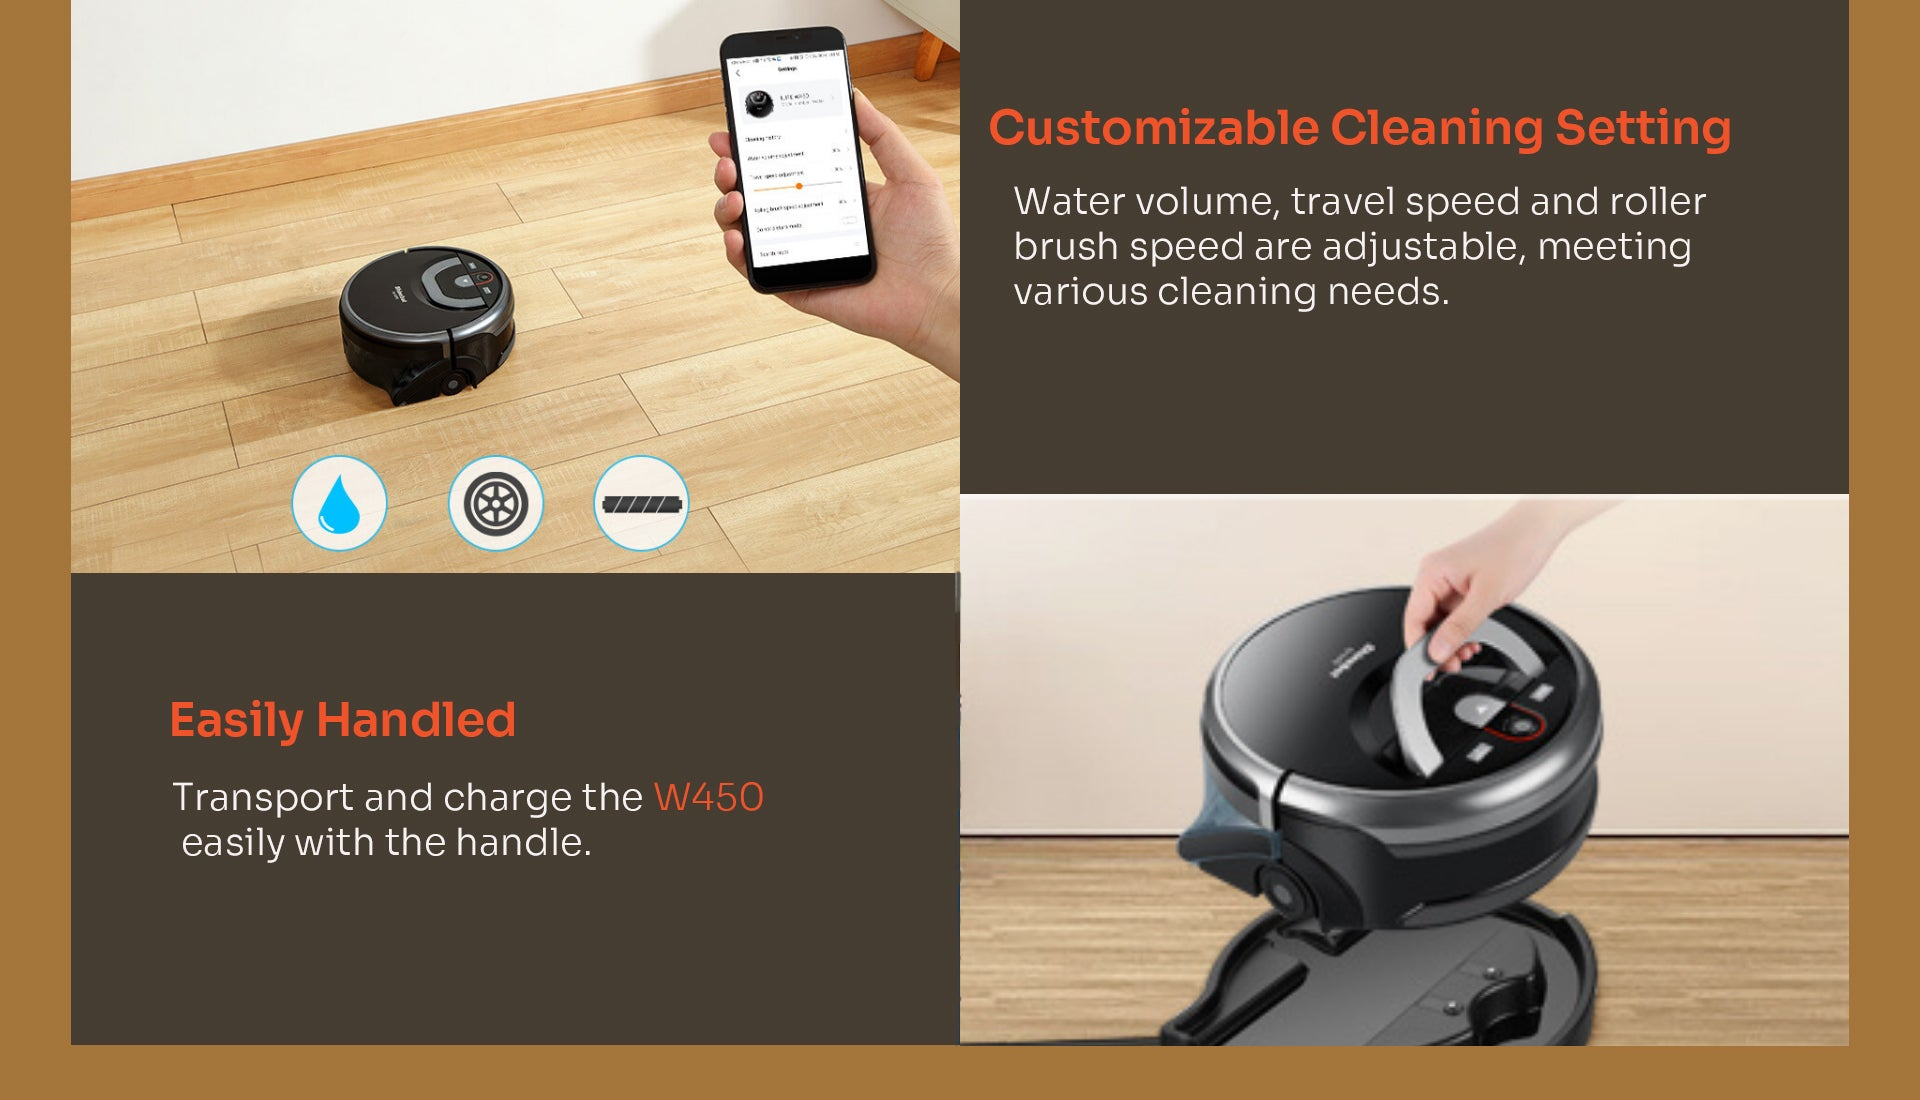 Customizable cleaning setting